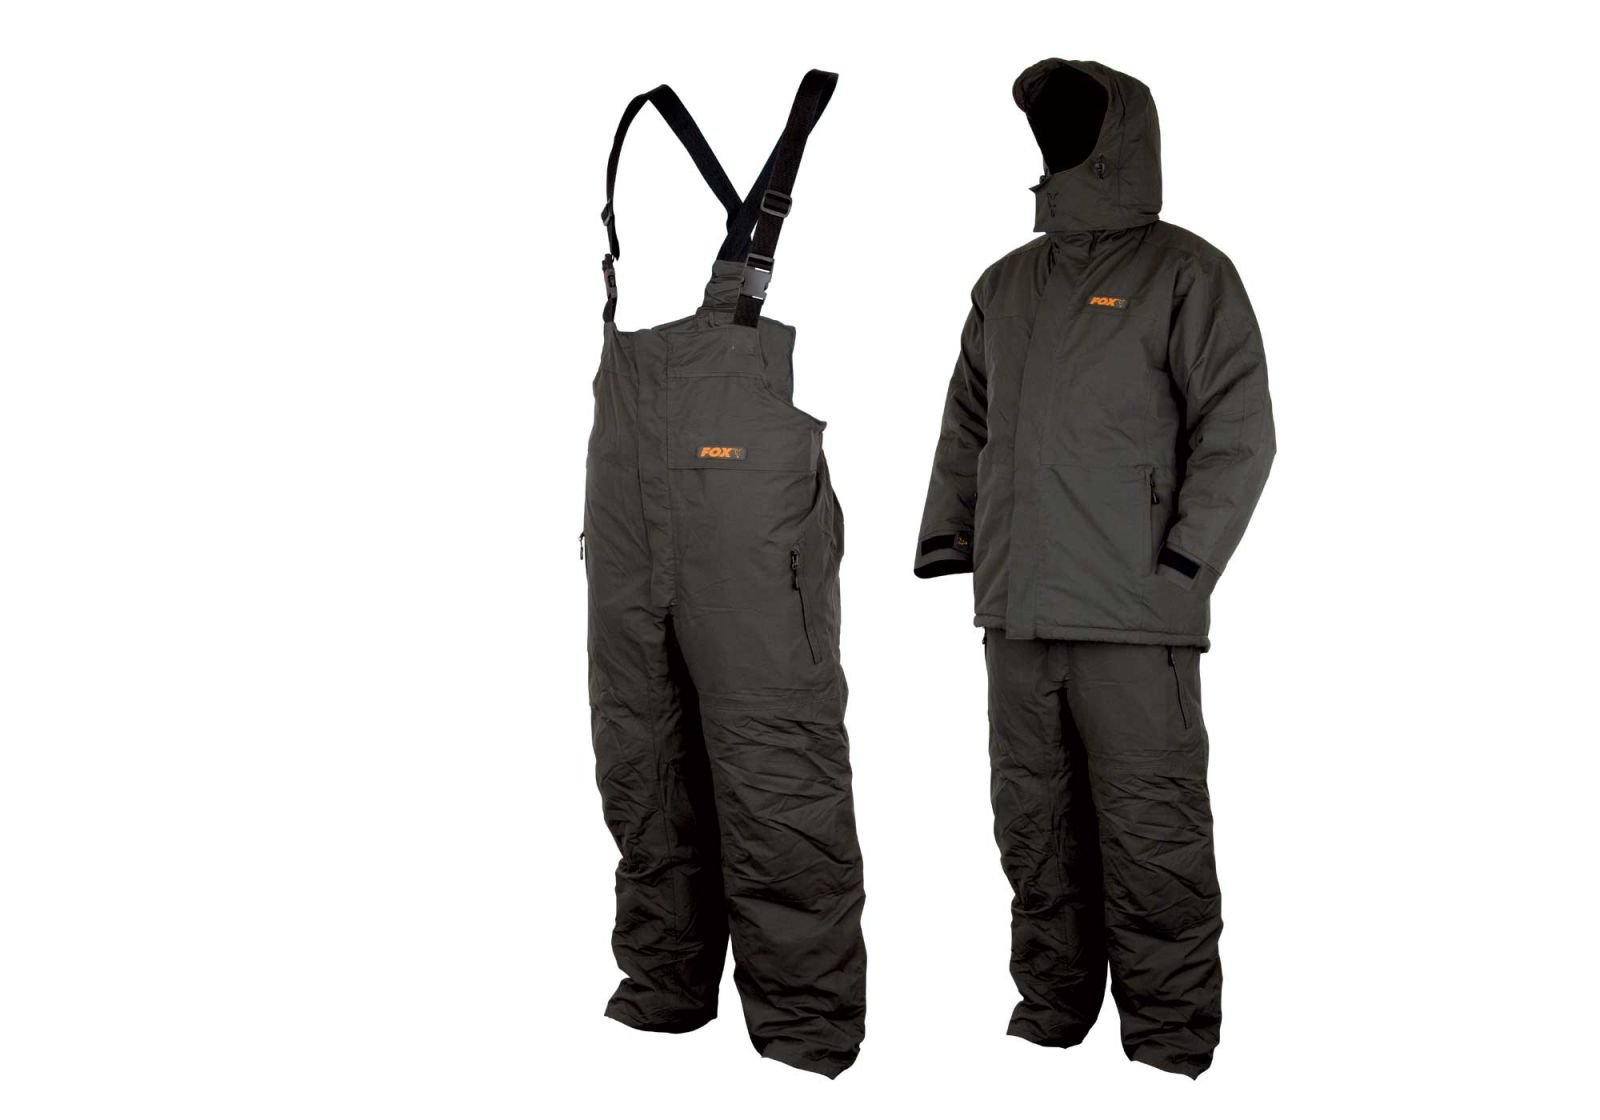 Carp winter suit